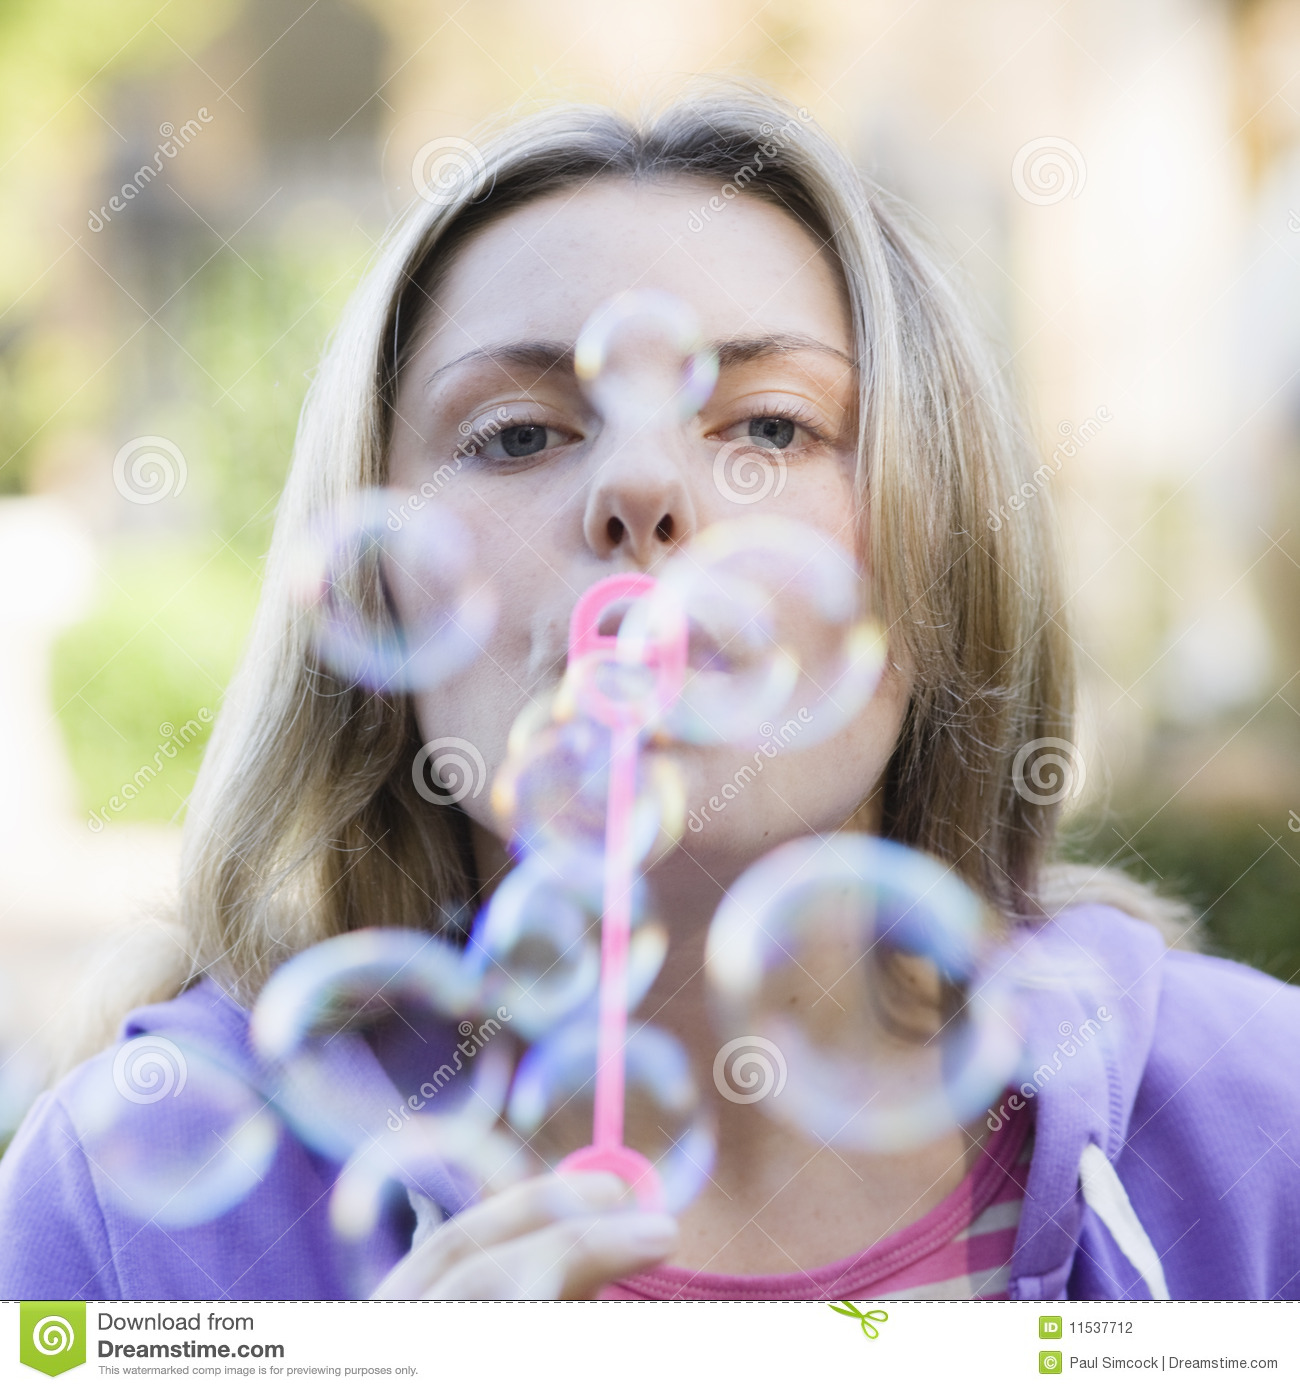 Teen Girl Blowing Bubbles Stock Photography - Image: 11537712: dreamstime.com/stock-photography-teen-girl-blowing-bubbles...